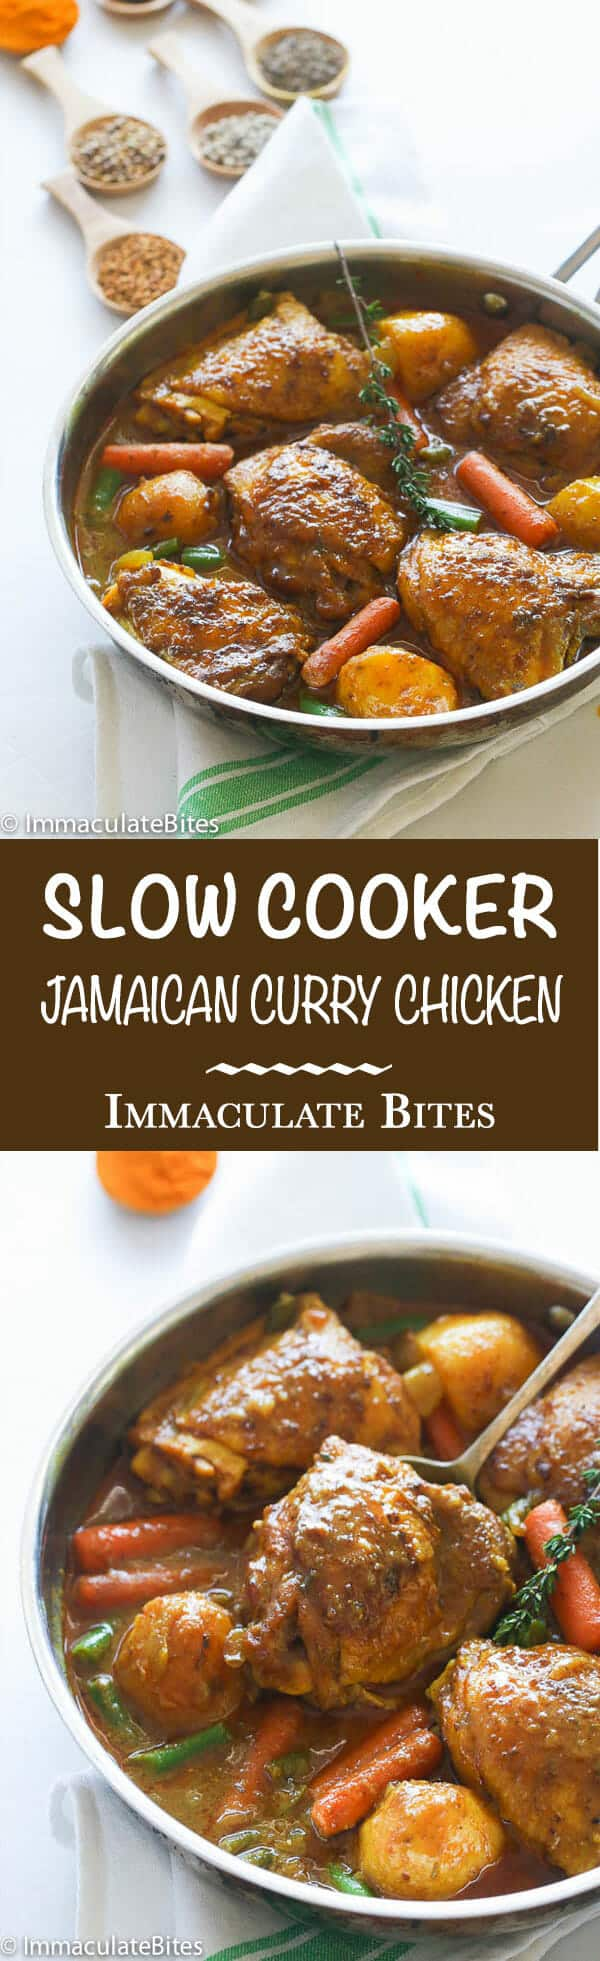 Slow cooker jamaican curry chicken immaculate bites jamaican curry chickenicken thighs seasoned and cook in thick flavorful creamy gravy of forumfinder Gallery